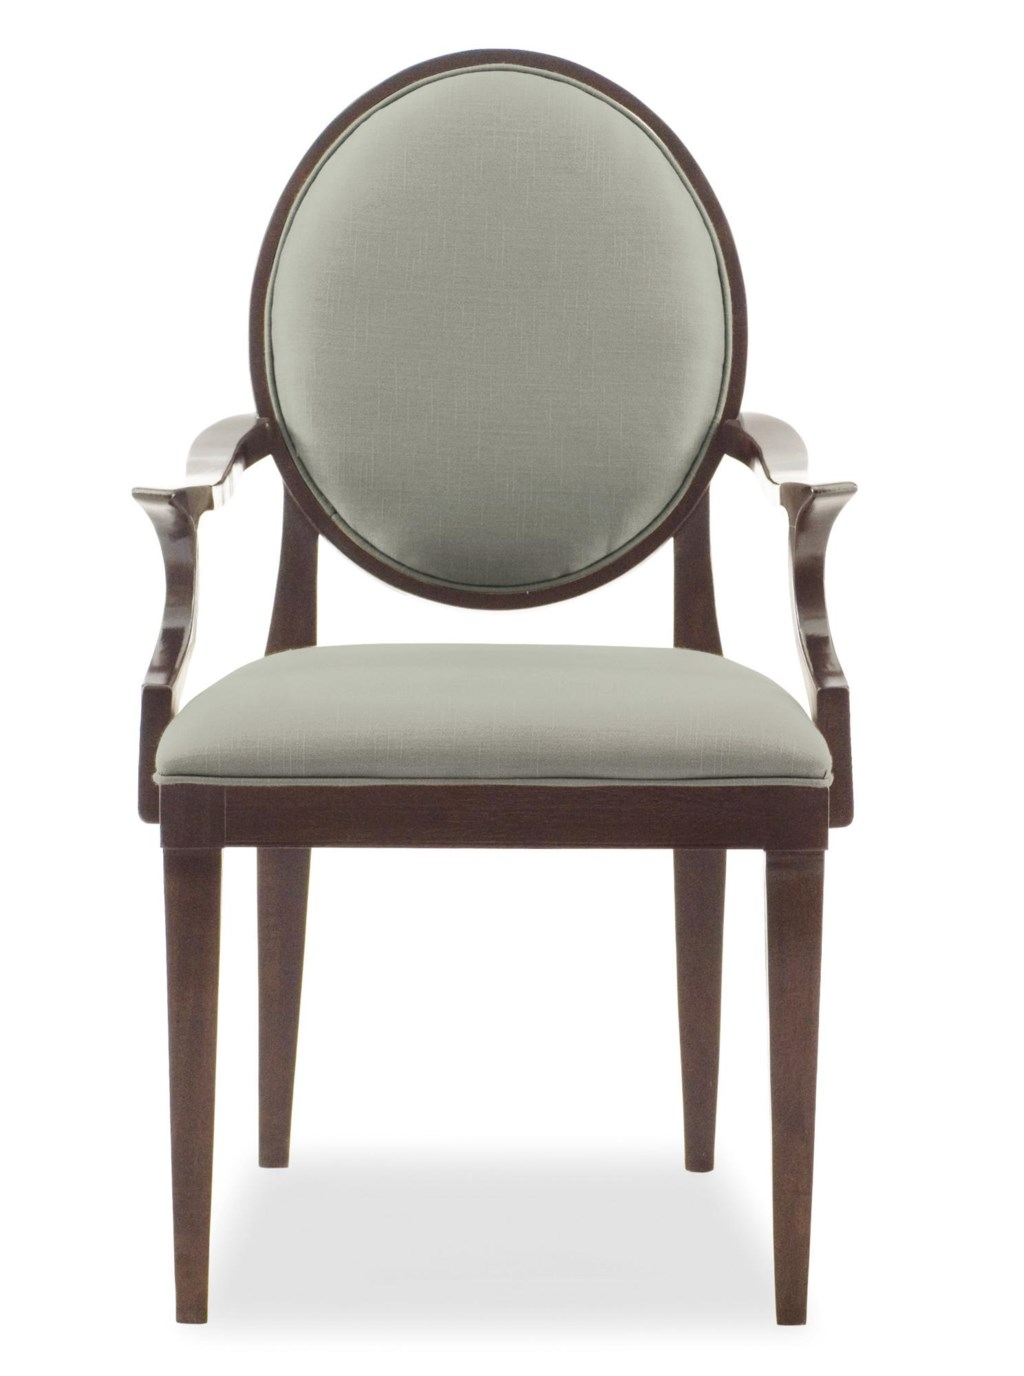 bernhardt haven arm chair with oval back - adcock furniture